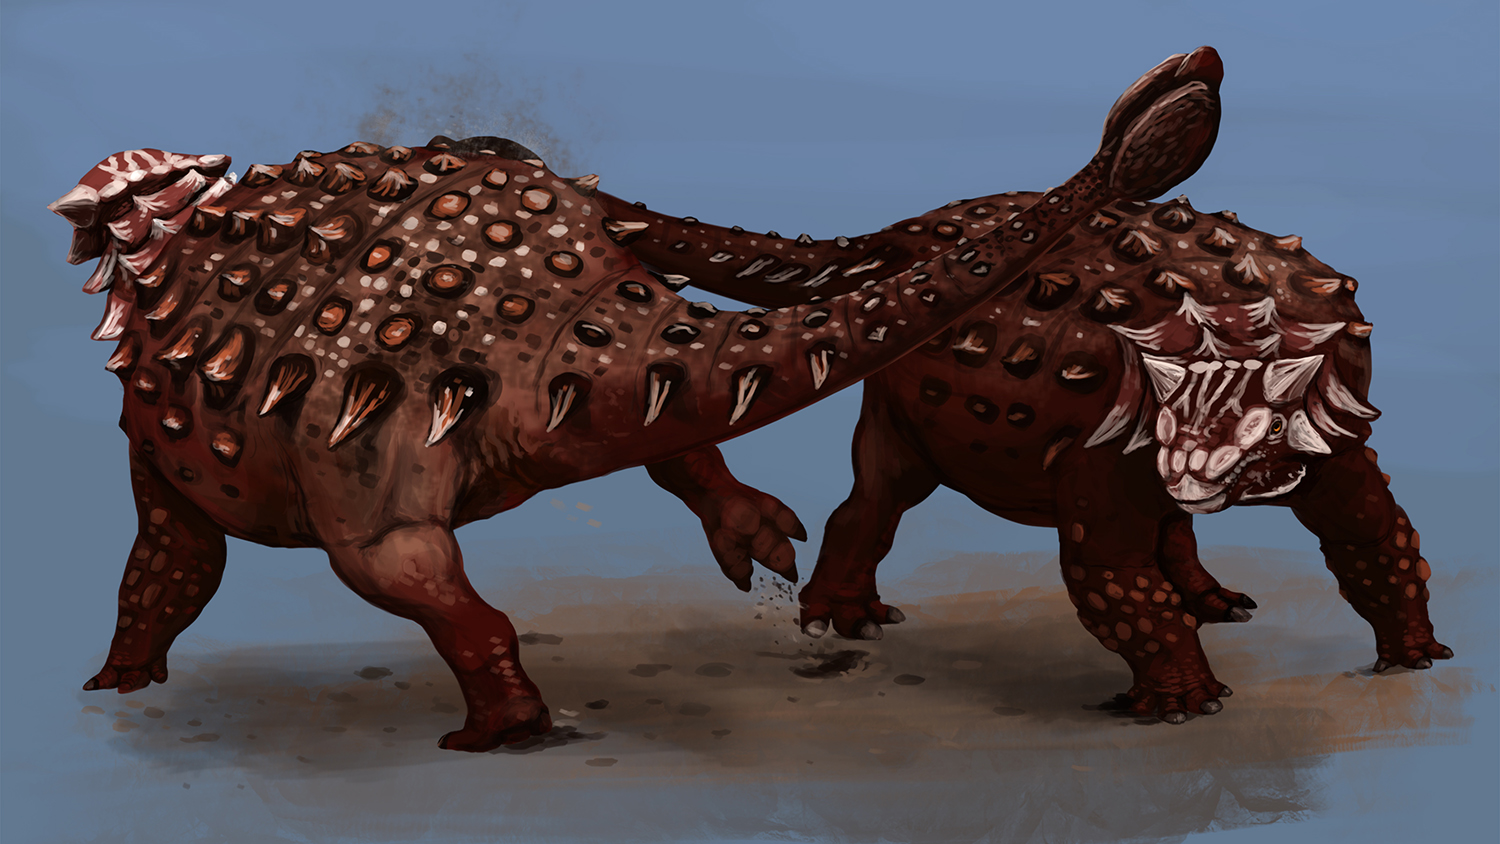 Clubs and spikes on armored tails and skin were useful for fending off predators, hunting for food, and defending nests and territory.